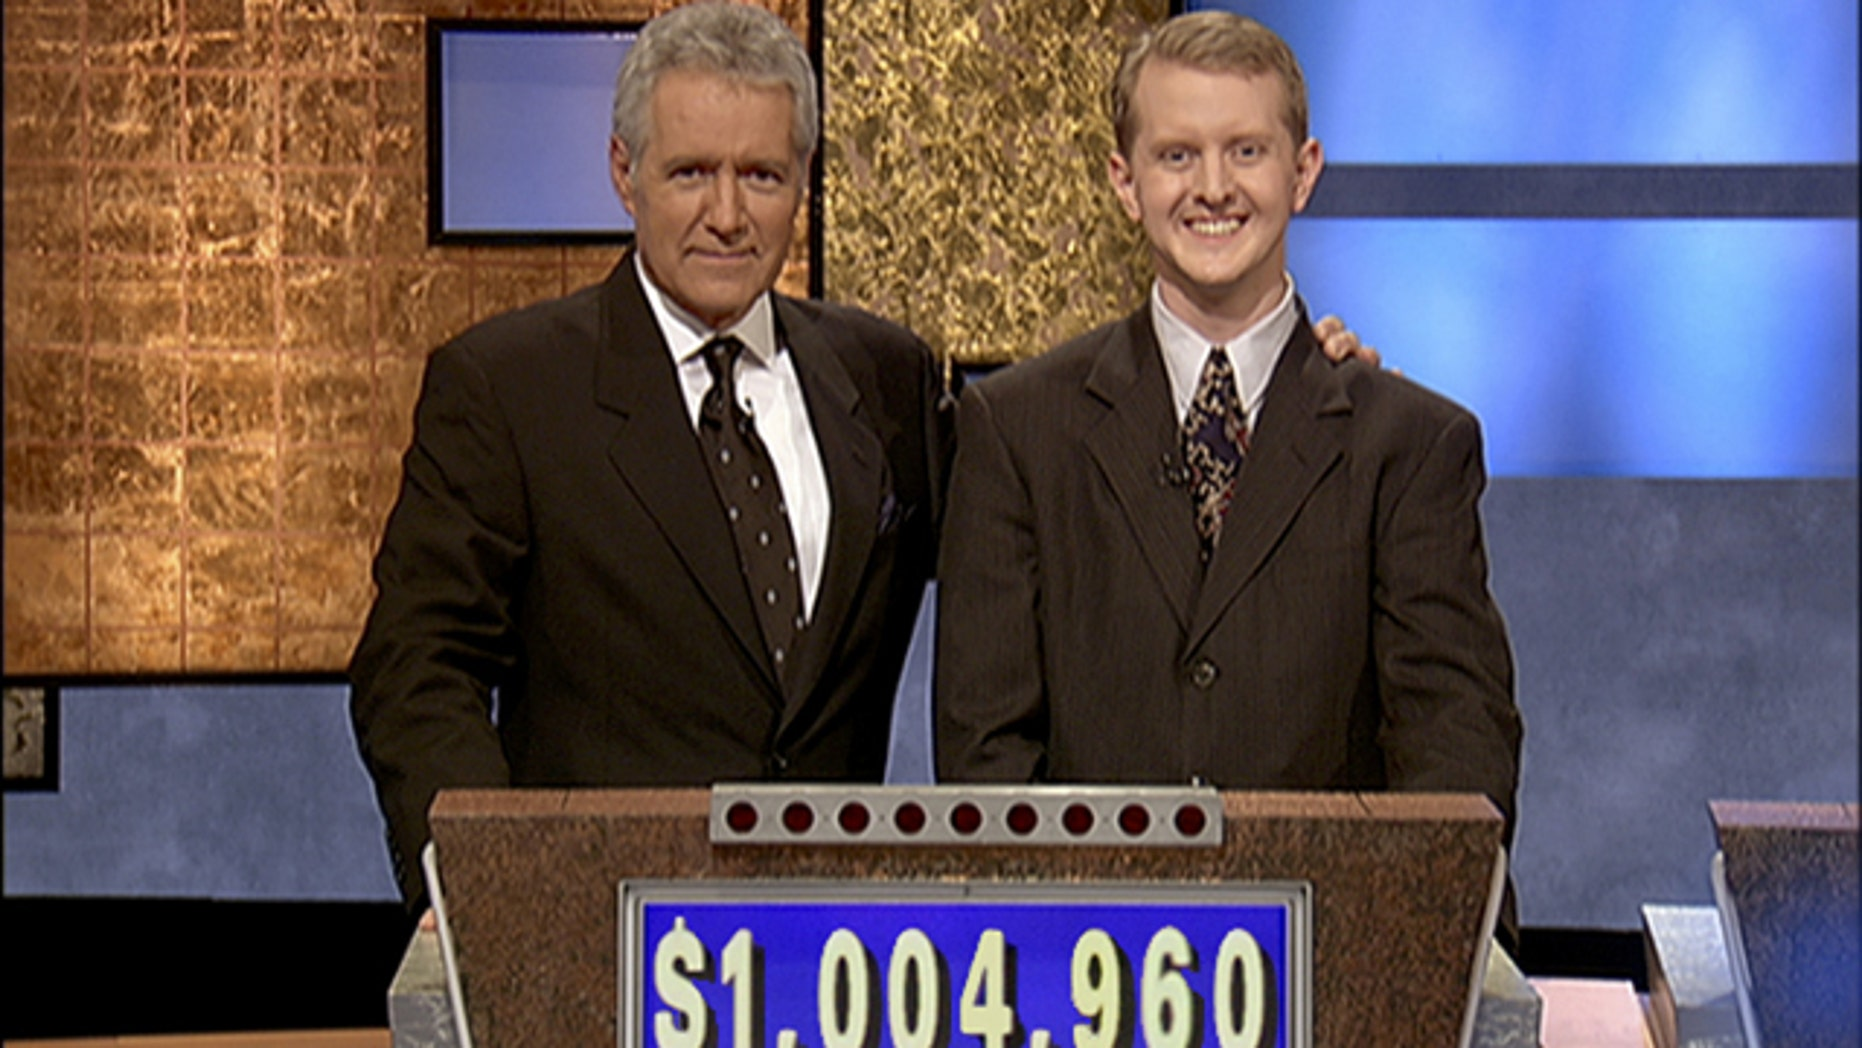 "Software developer Ken Jennings from Salt Lake City, Utah poses for a photo with Jeopardy host Alex Trebek on the set of the show in Culver City, Calif. On Thursday Jan. 13, 2011 IBM computer Watson will play a practice round against Jennings, who won a record 74 consecutive ""Jeopardy!"" games in 2004-05."